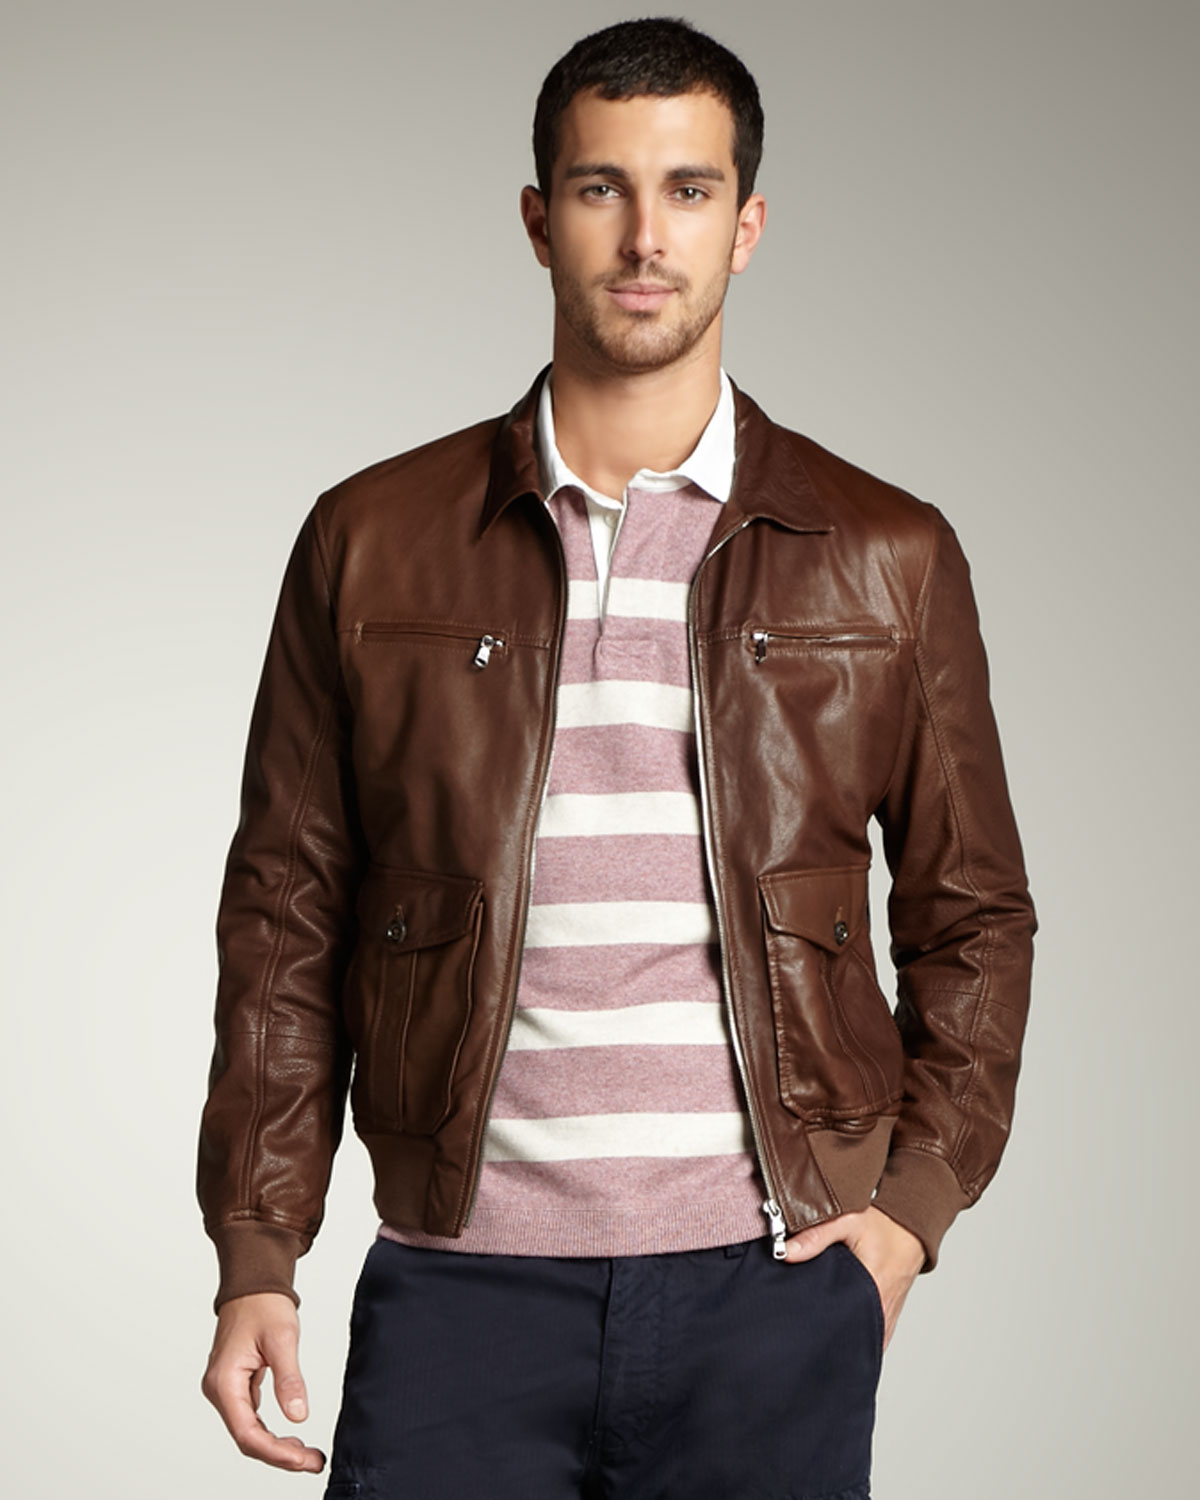 Lyst - Brunello cucinelli Leather Bomber Jacket in Brown for Men